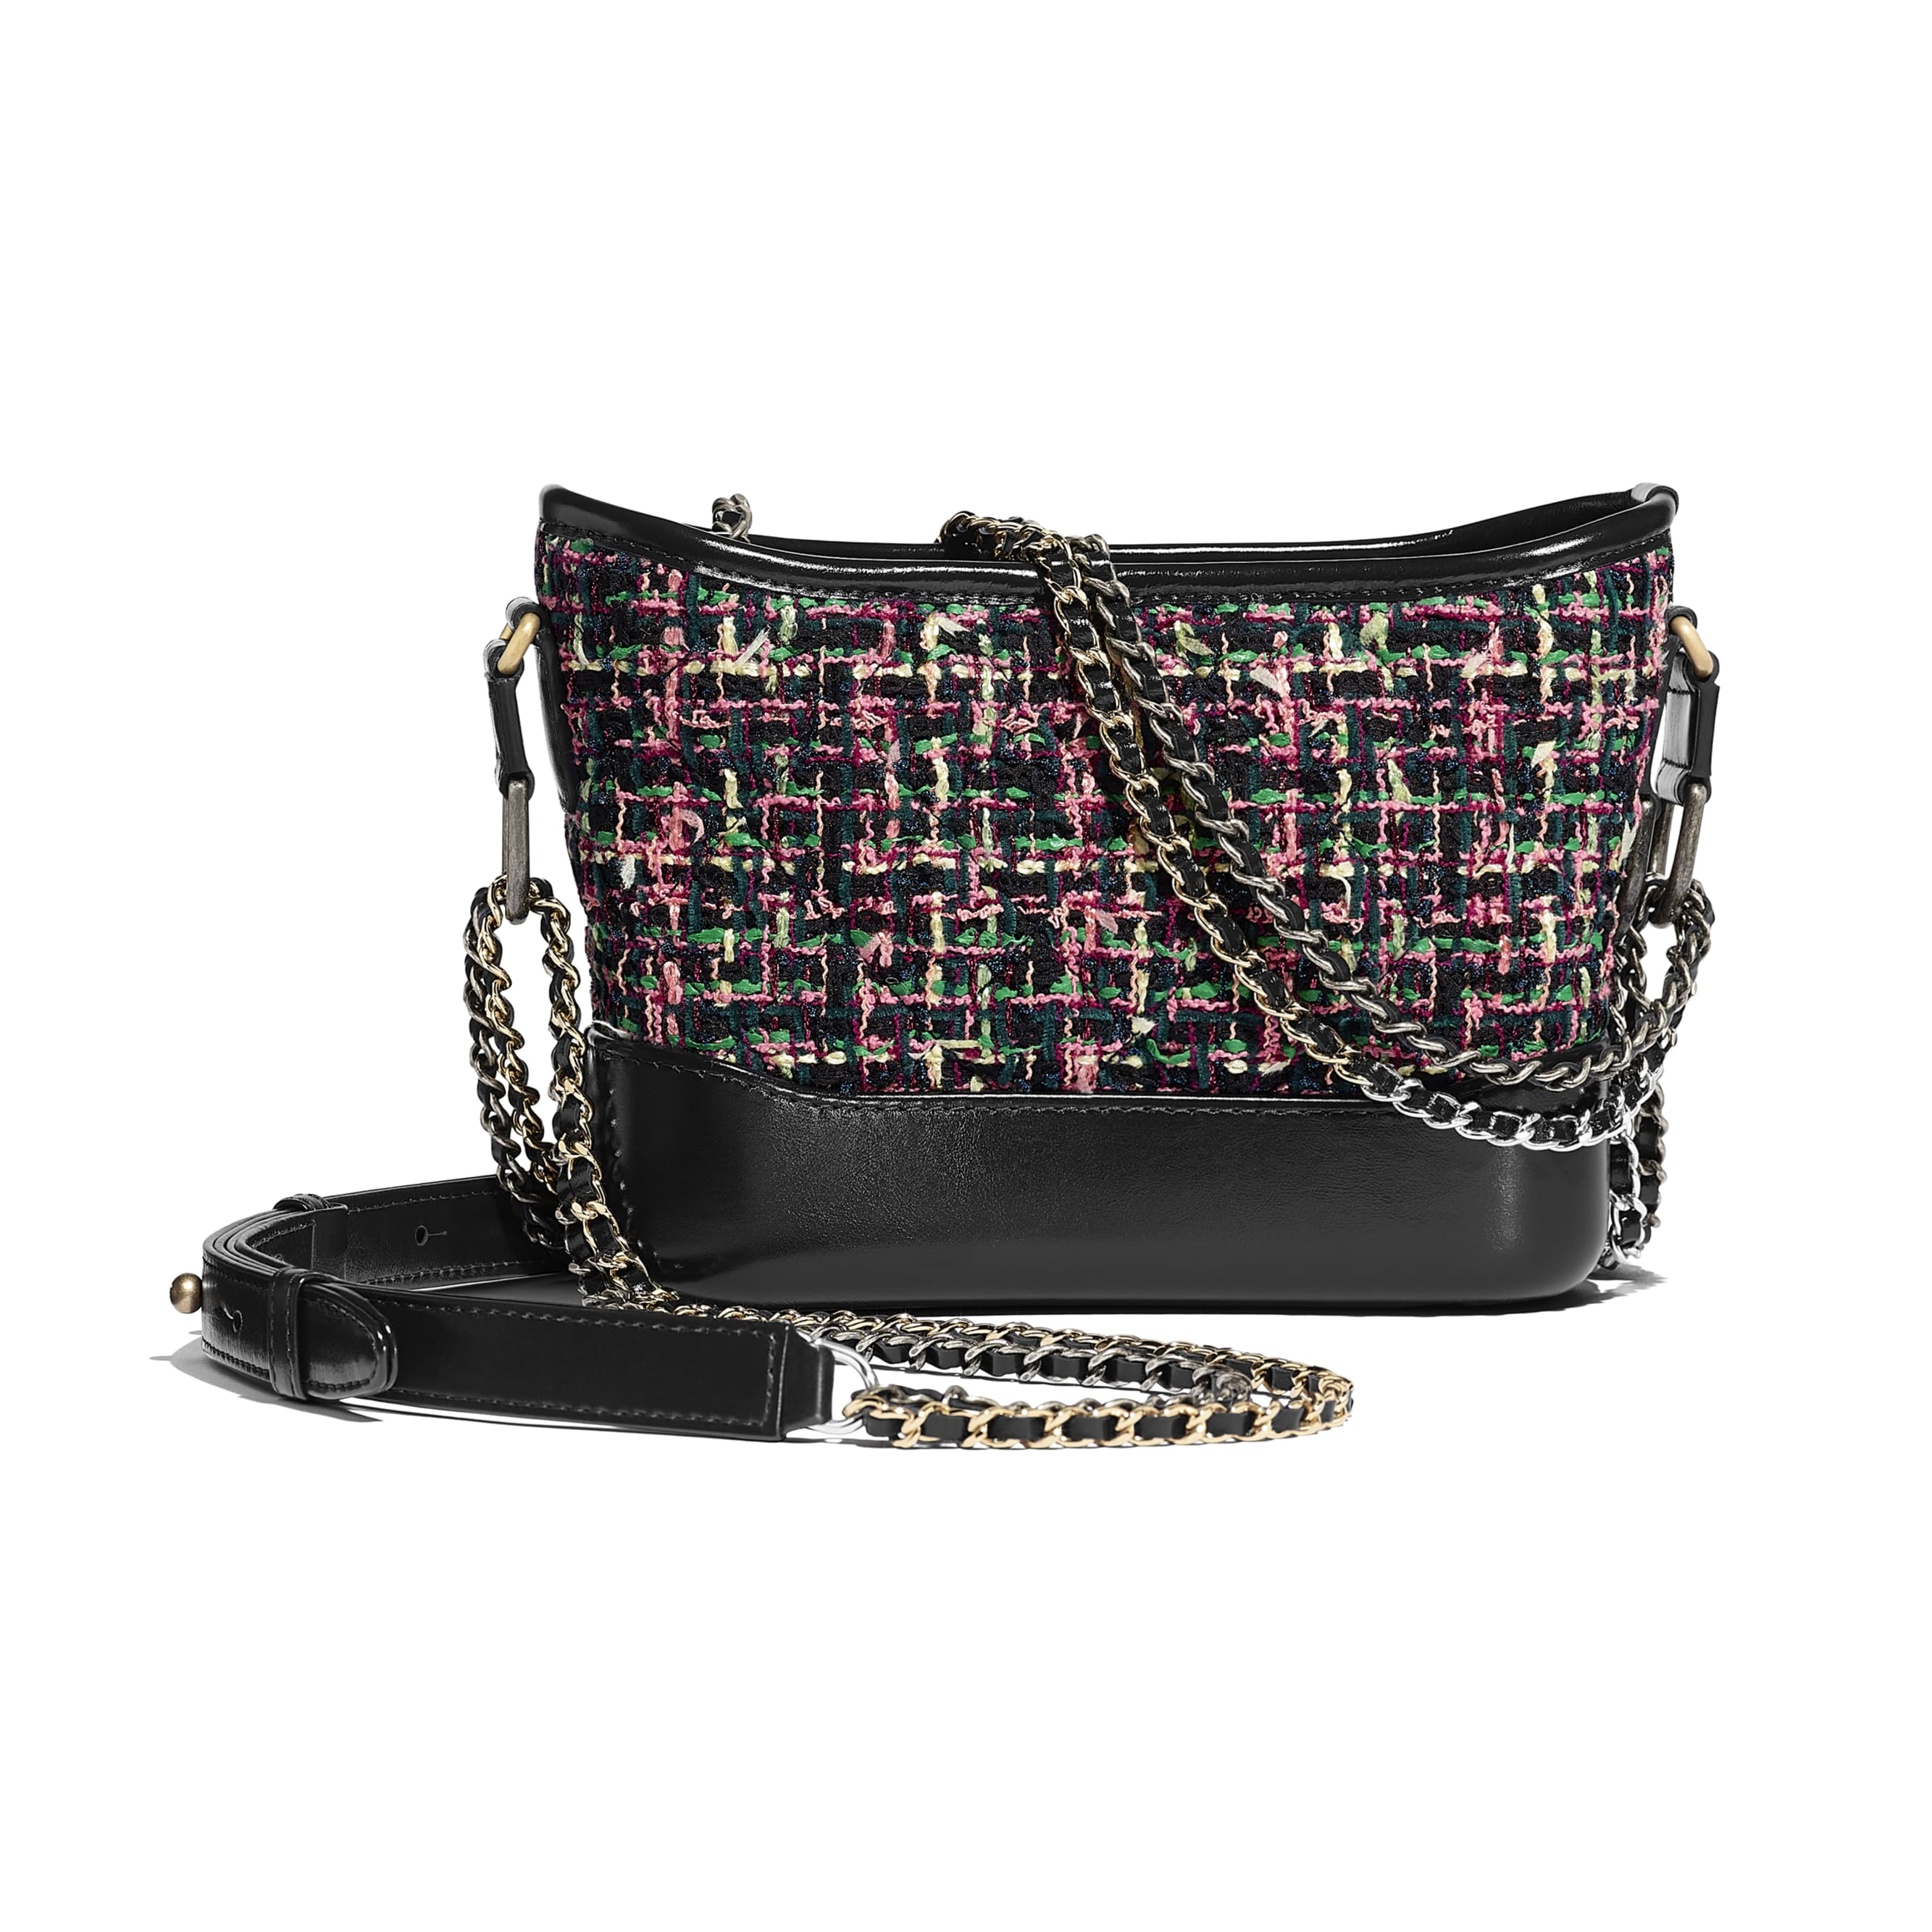 CHANEL'S GABRIELLE Small Hobo Bag - Pink & Navy Blue - Tweed, Calfskin, Gold-Tone & Silver-Tone Metal - Alternative view - see standard sized version